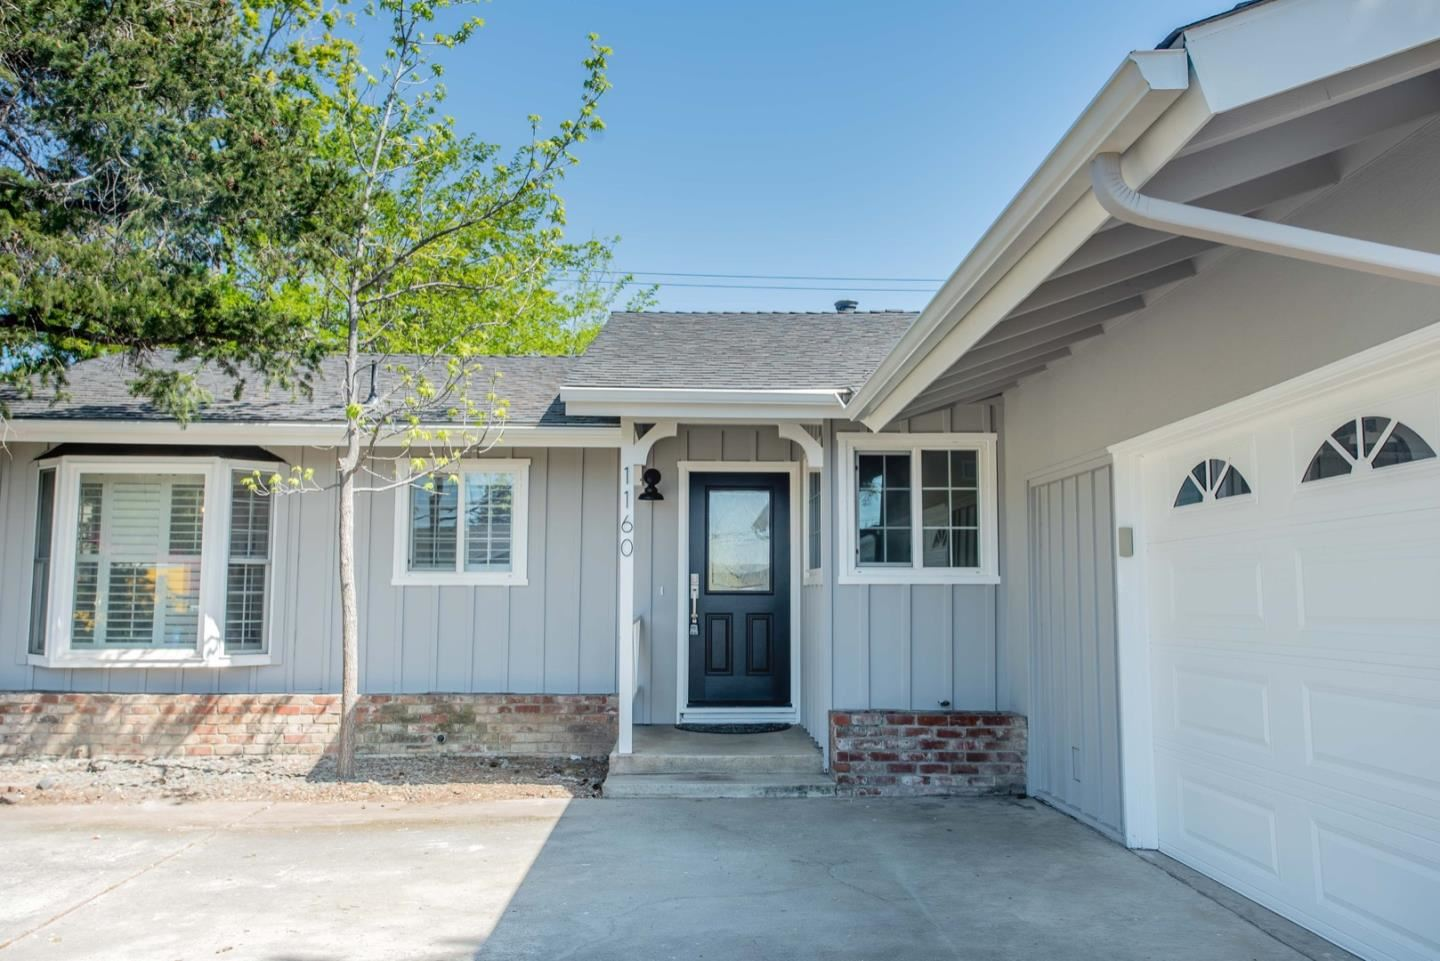 Photo for 1160 Longfellow Avenue, CAMPBELL, CA 95008 (MLS # ML81840277)